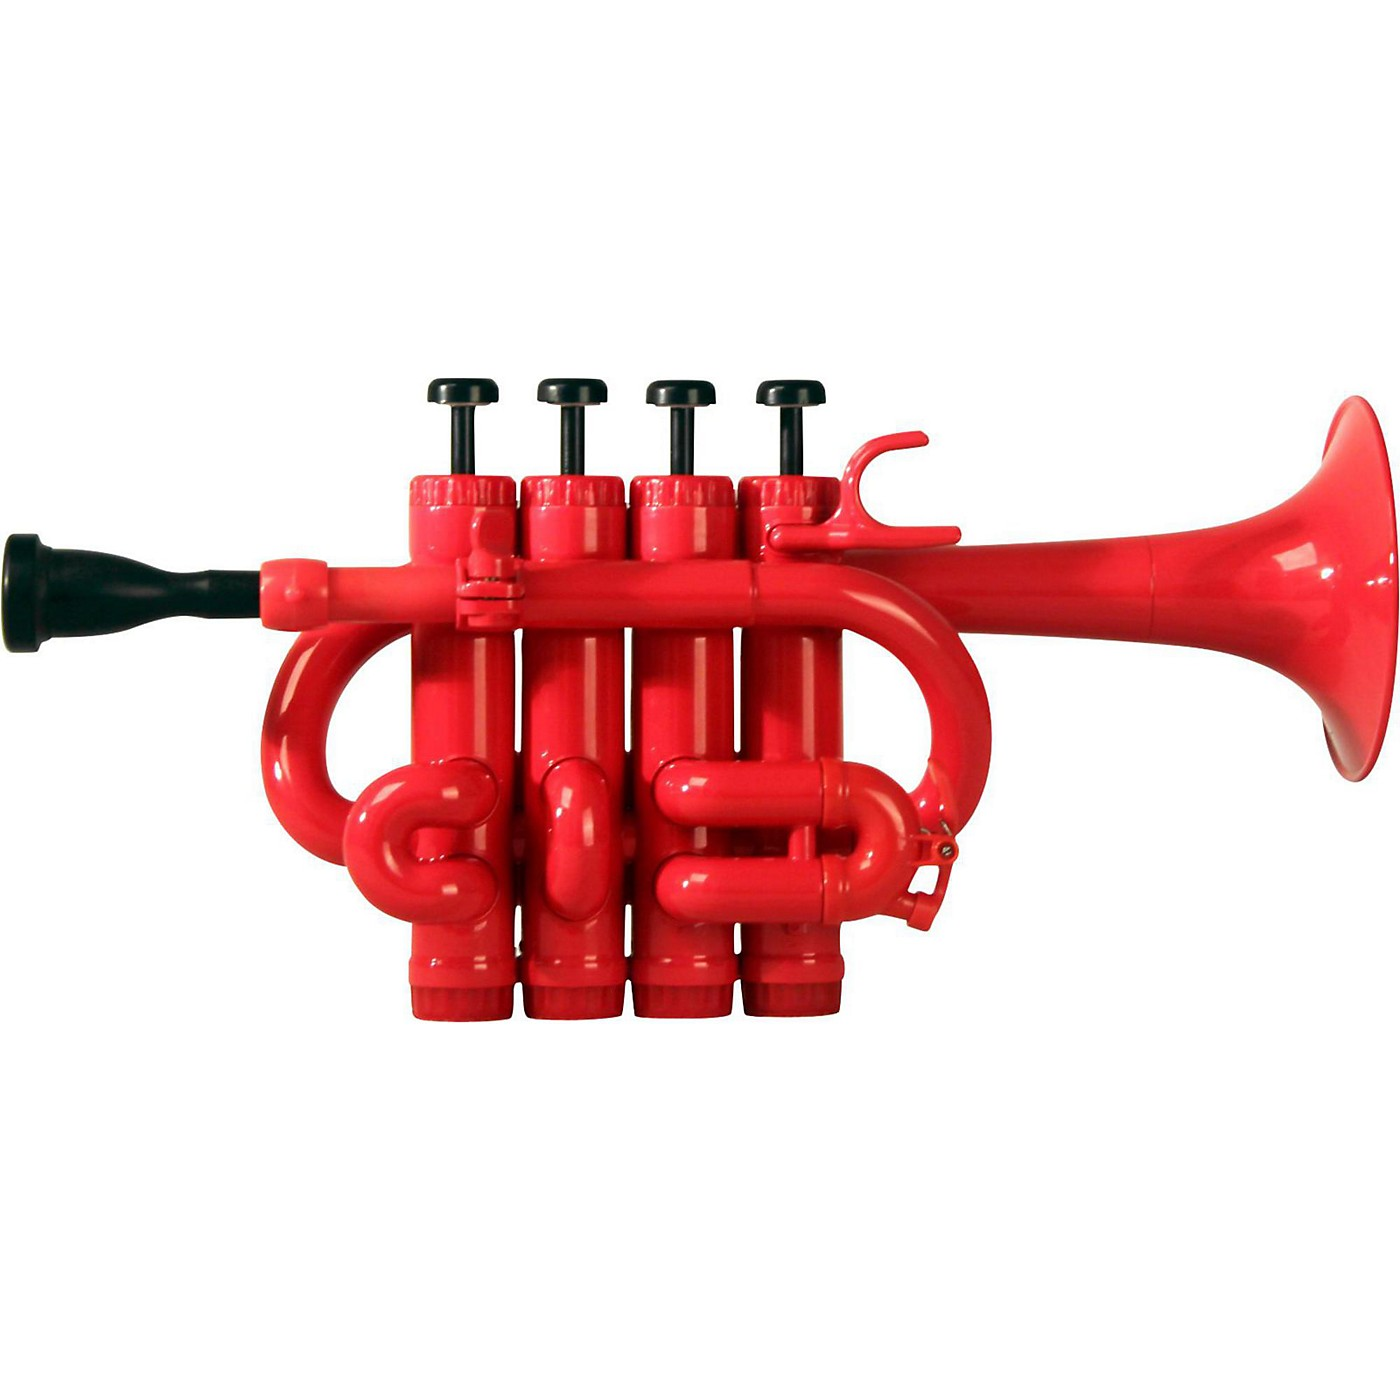 Cool Wind CPT-200 Series Plastic Bb/A Piccolo Trumpet thumbnail